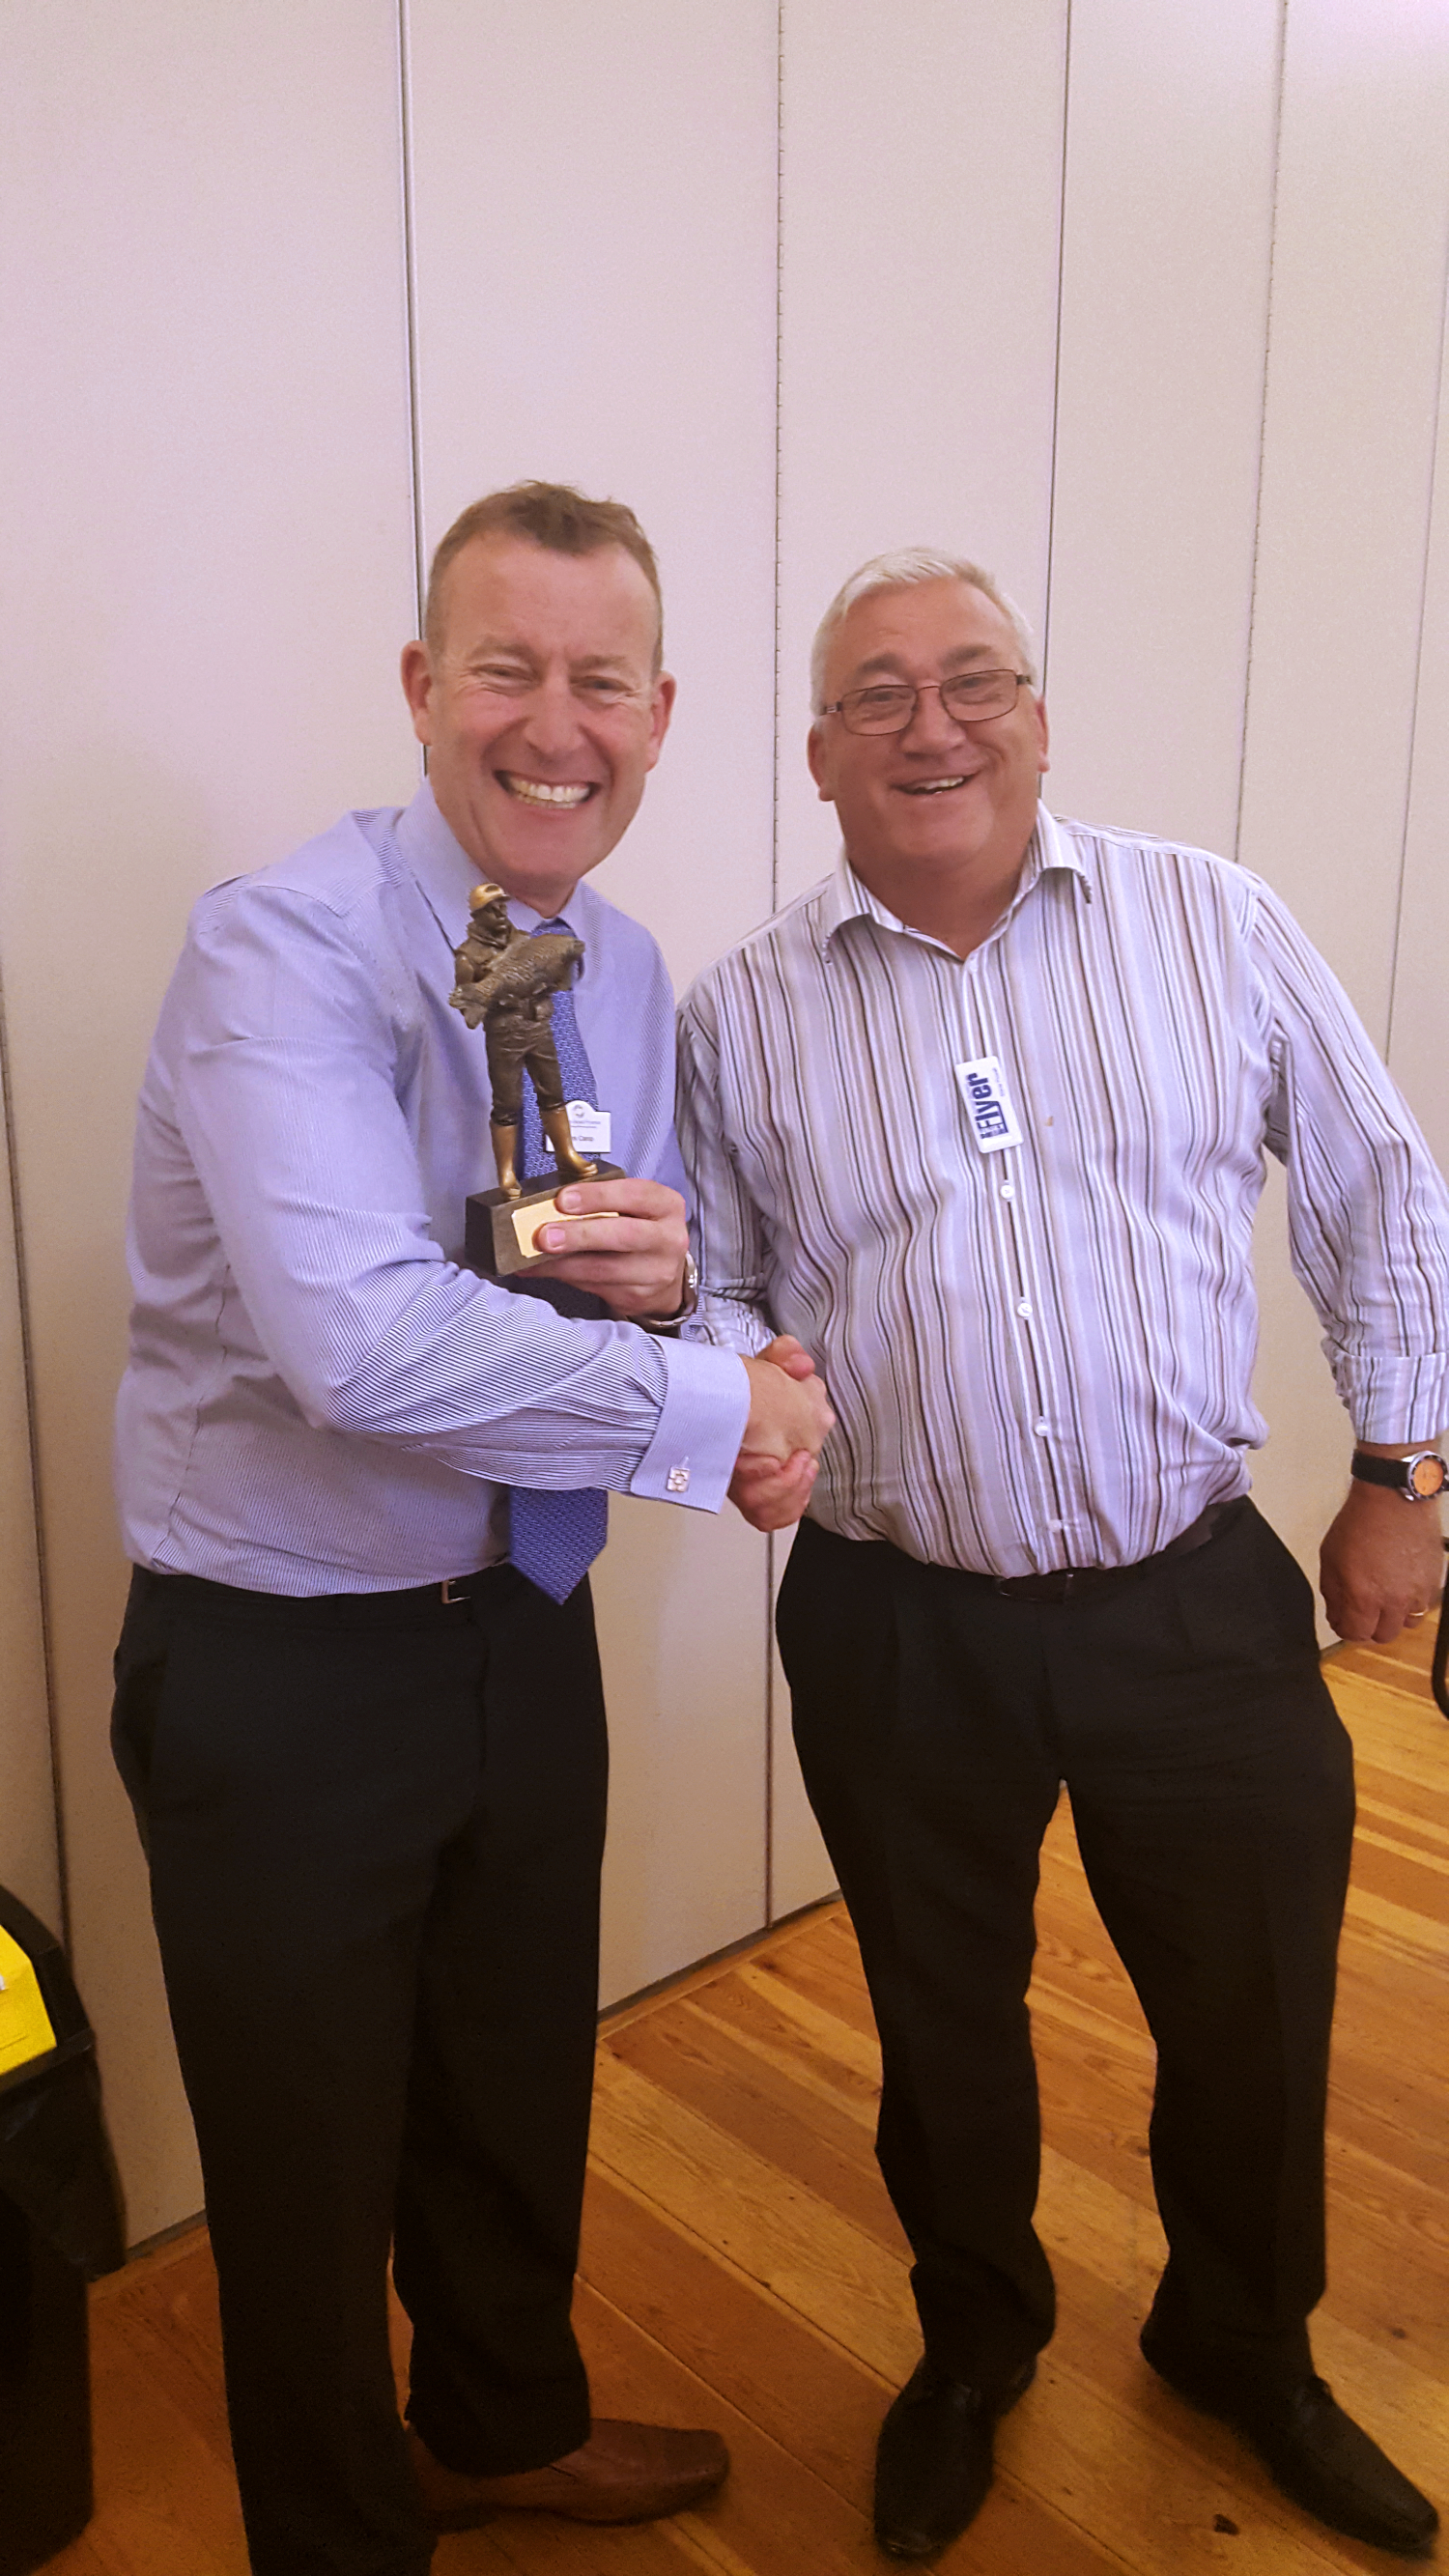 Mark Camp receiving the trophy from Steve Powell last weeks winner from the Bury Flyer.